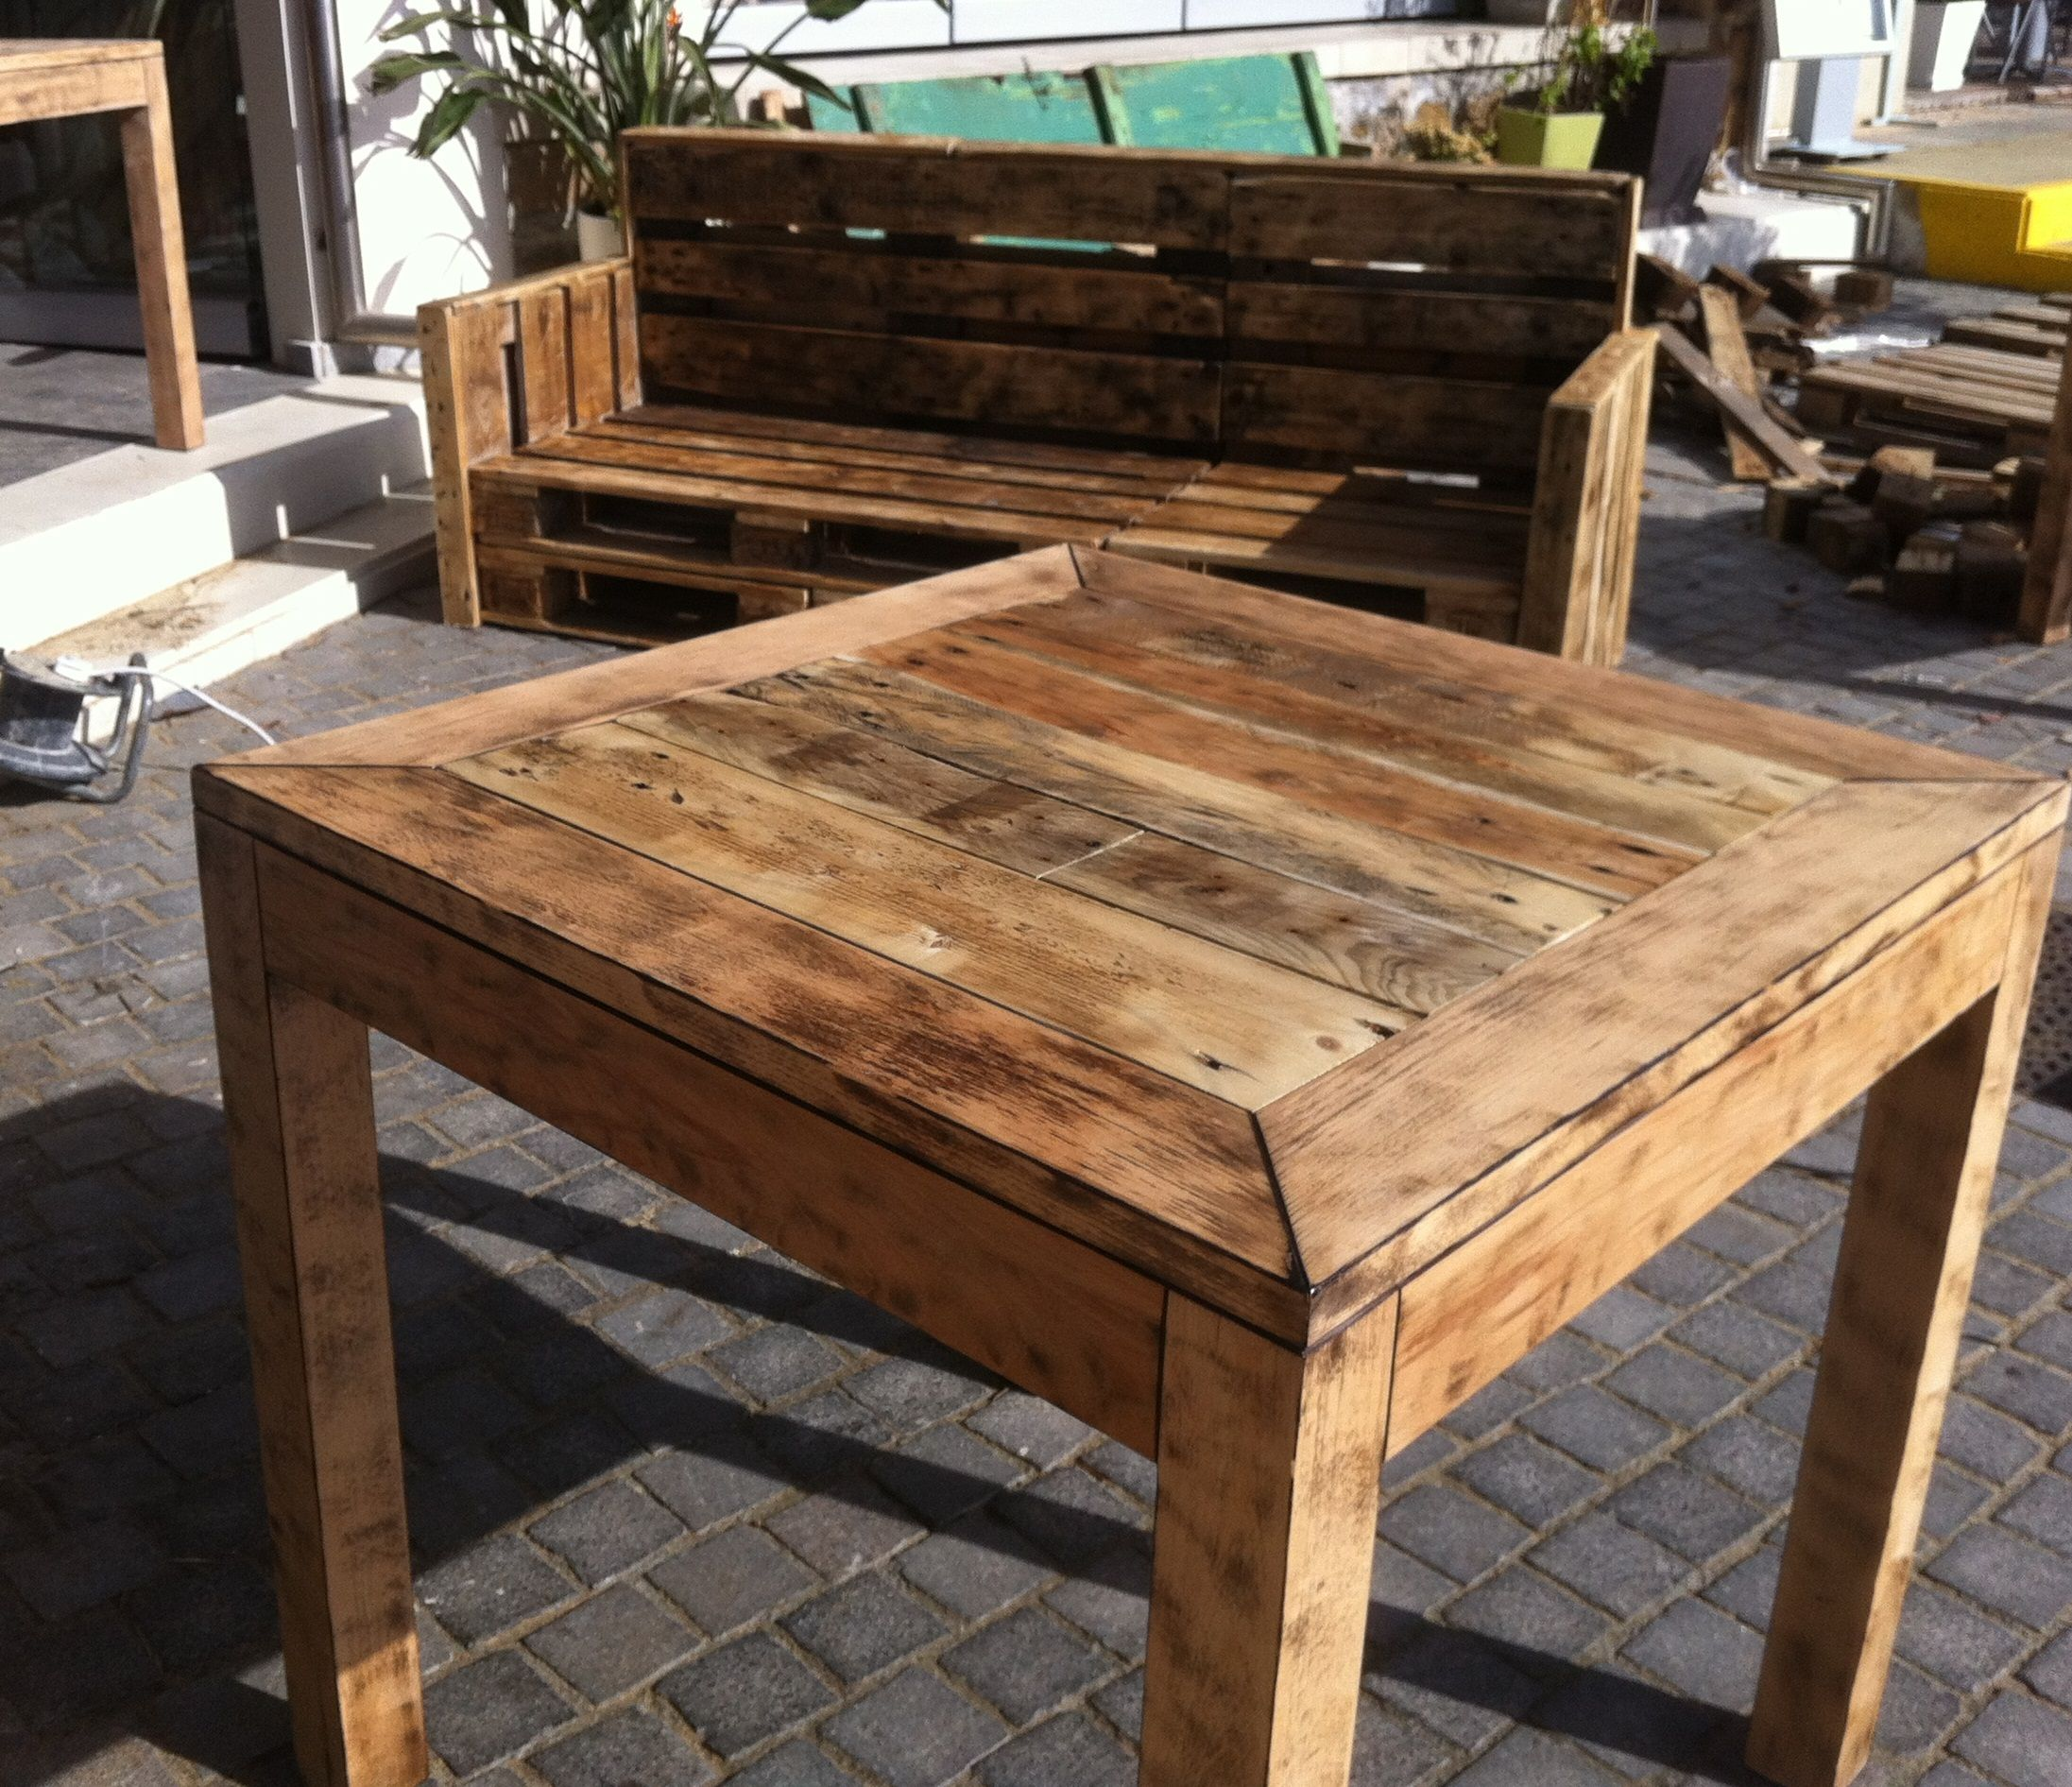 terrace couch and table made from pallet wood  :)